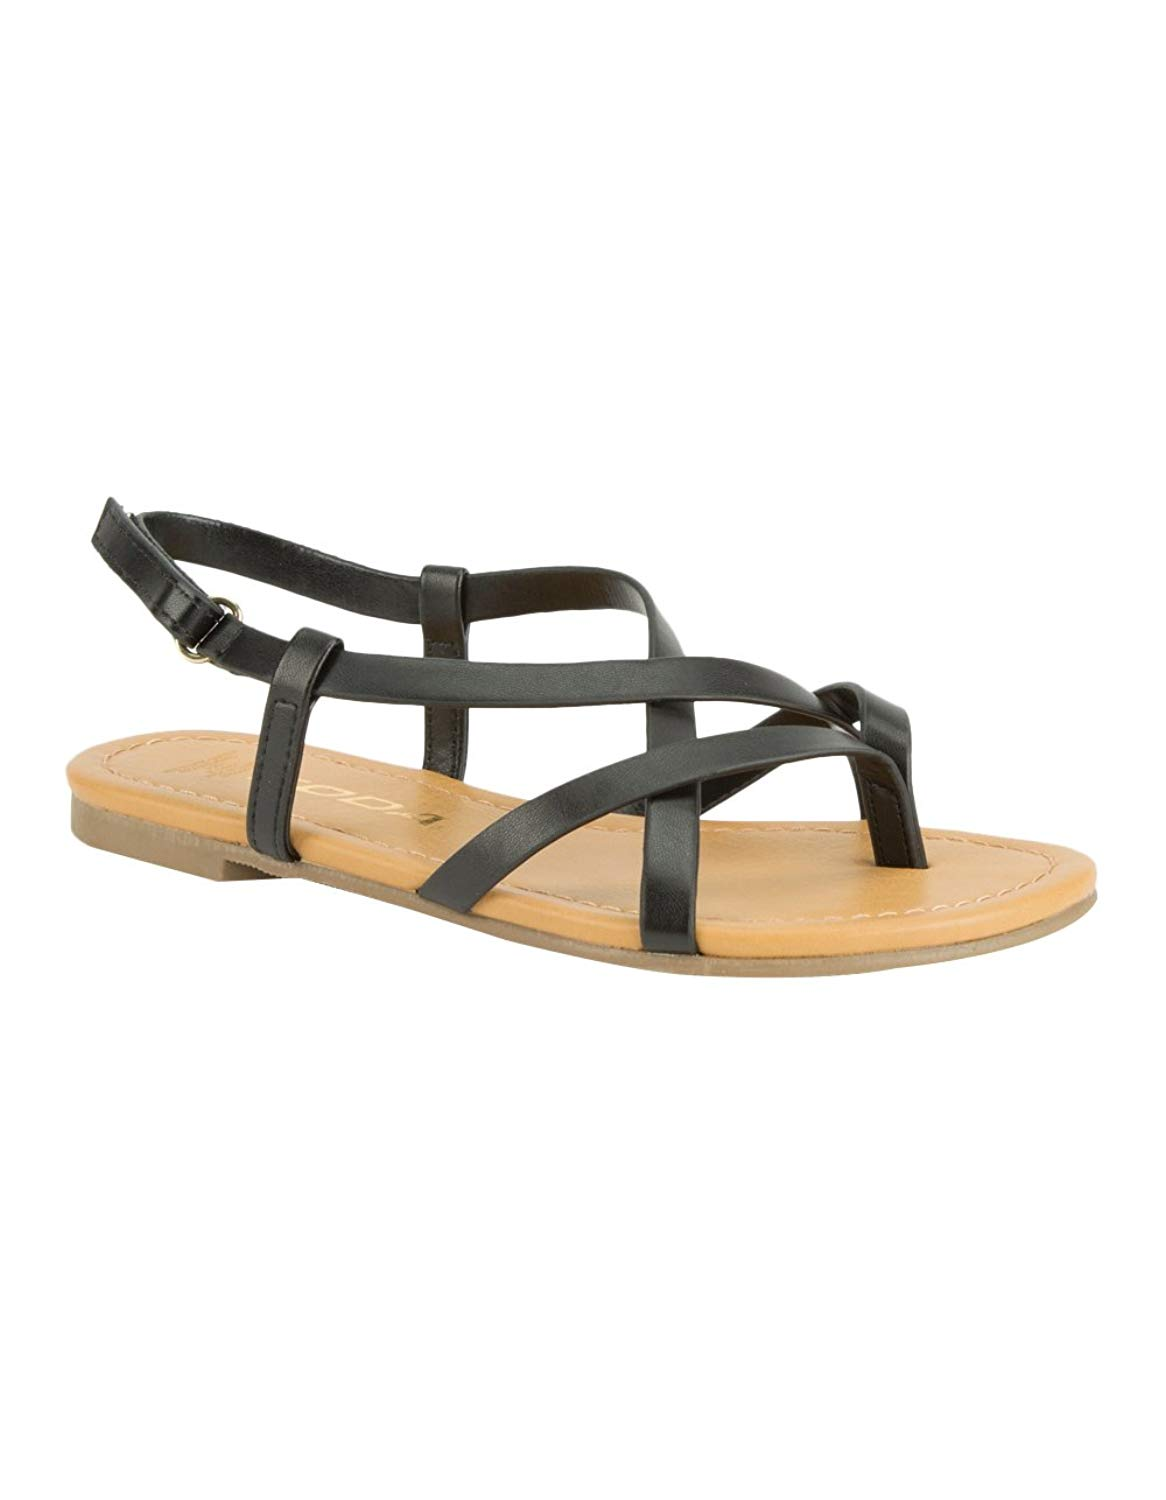 514220ea5 Get Quotations · Soda Criss Cross Girls Sandals